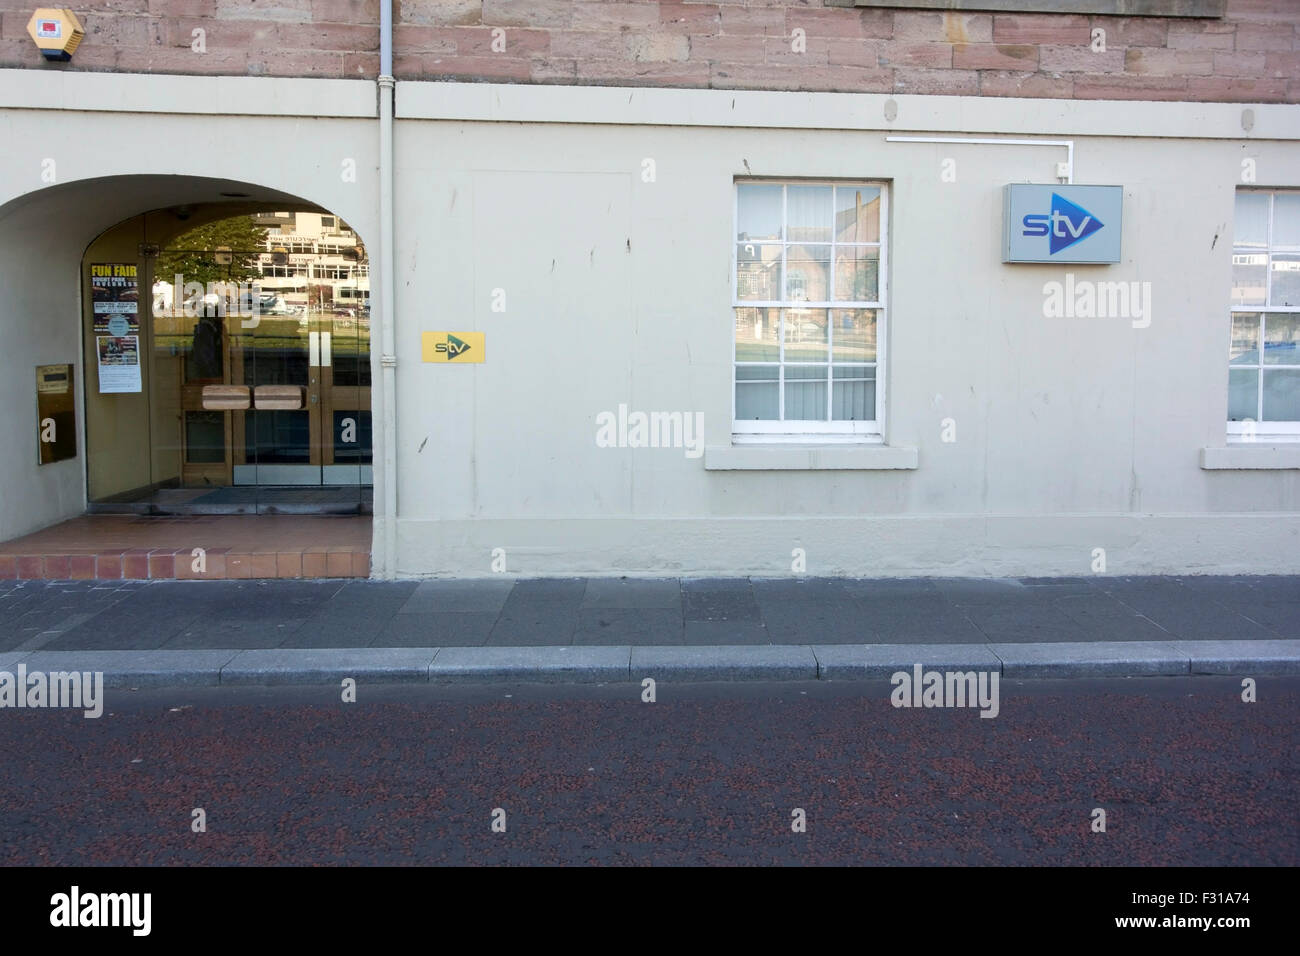 Scottish Television STV Broadcaster's Premises Huntly Street Inverness - Stock Image